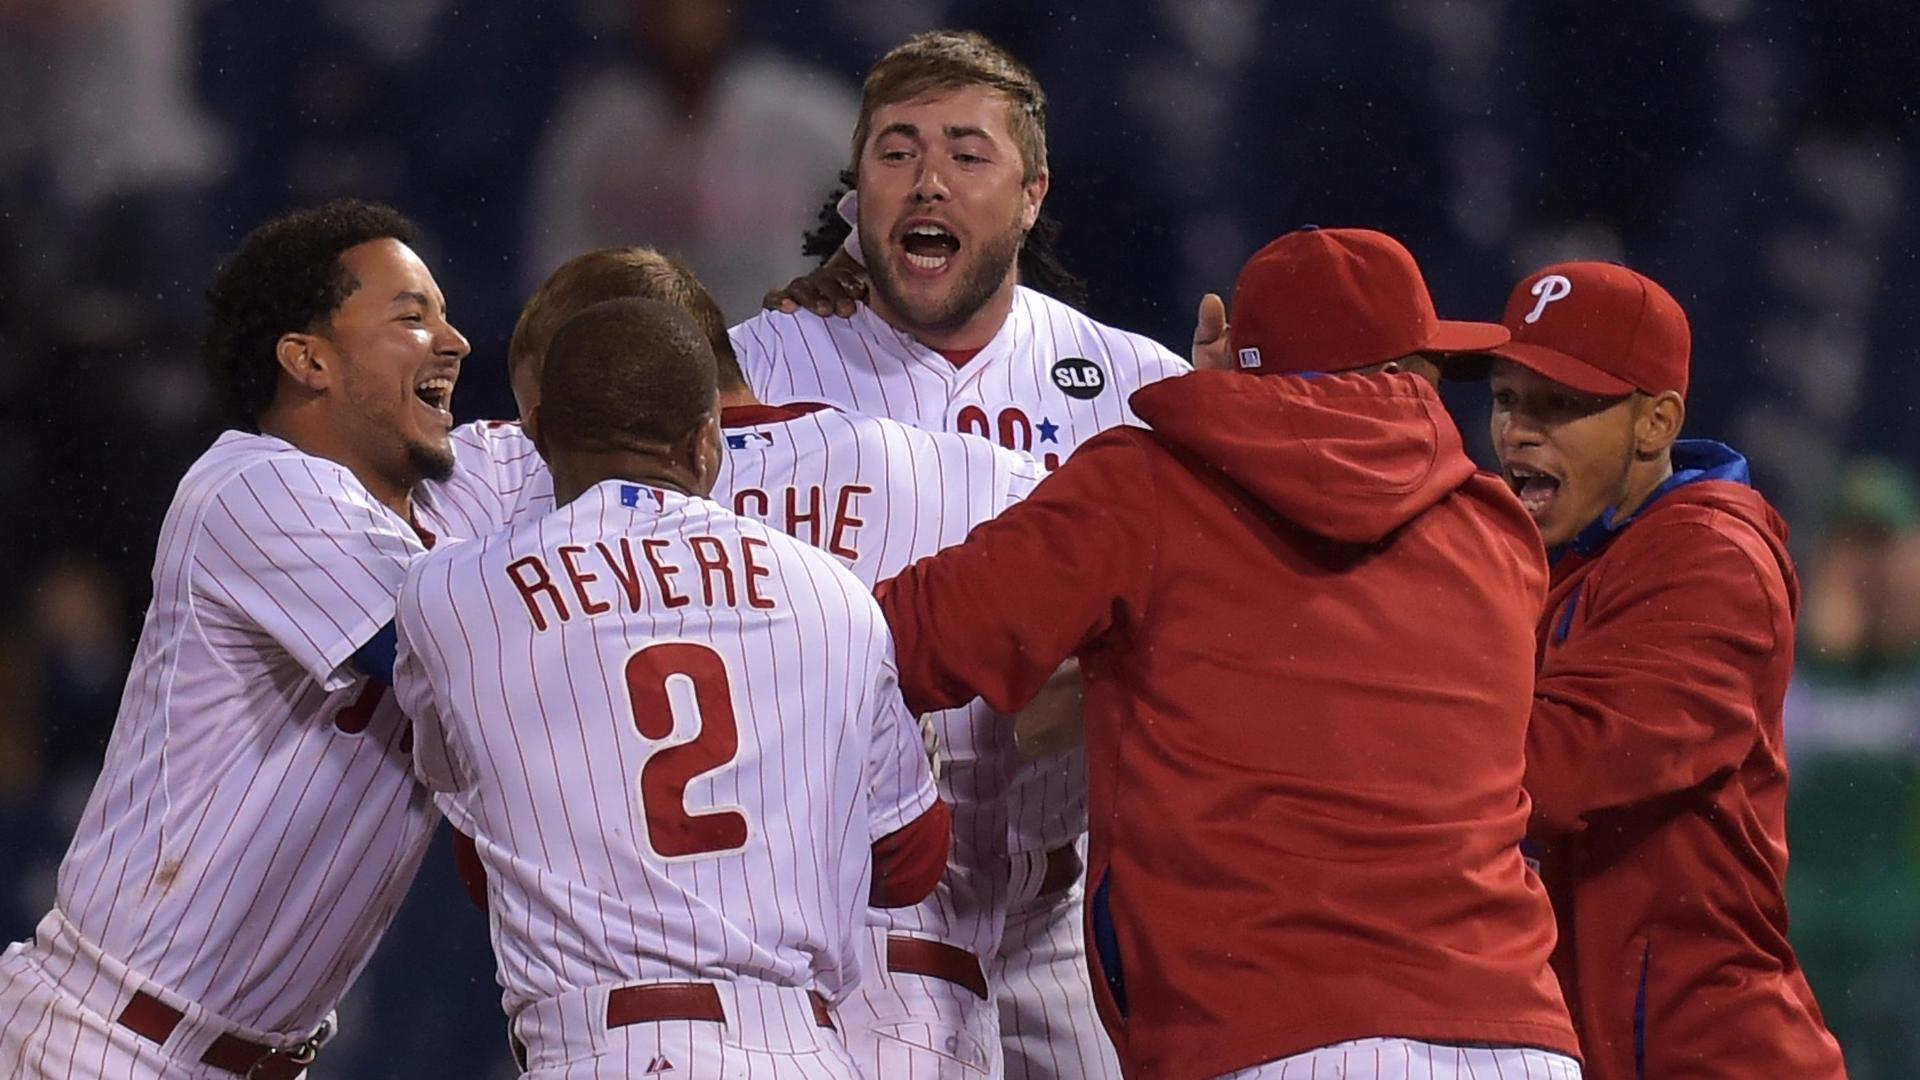 http://a.espncdn.com/media/motion/2015/0603/dm_150602_mlb_reds_phillies_highlight147/dm_150602_mlb_reds_phillies_highlight147.jpg